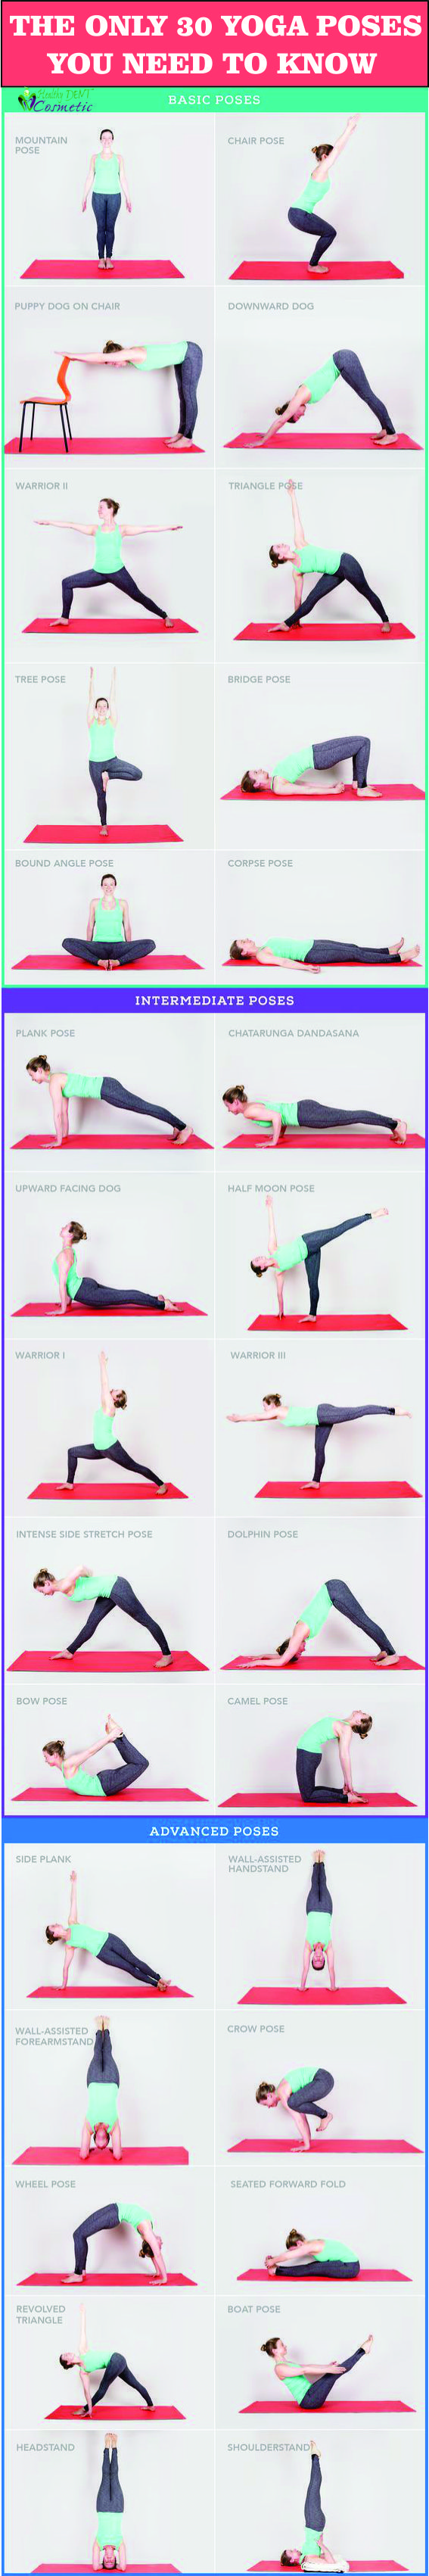 The Only 30 Yoga Poses You Really Need to Know PIN IT!